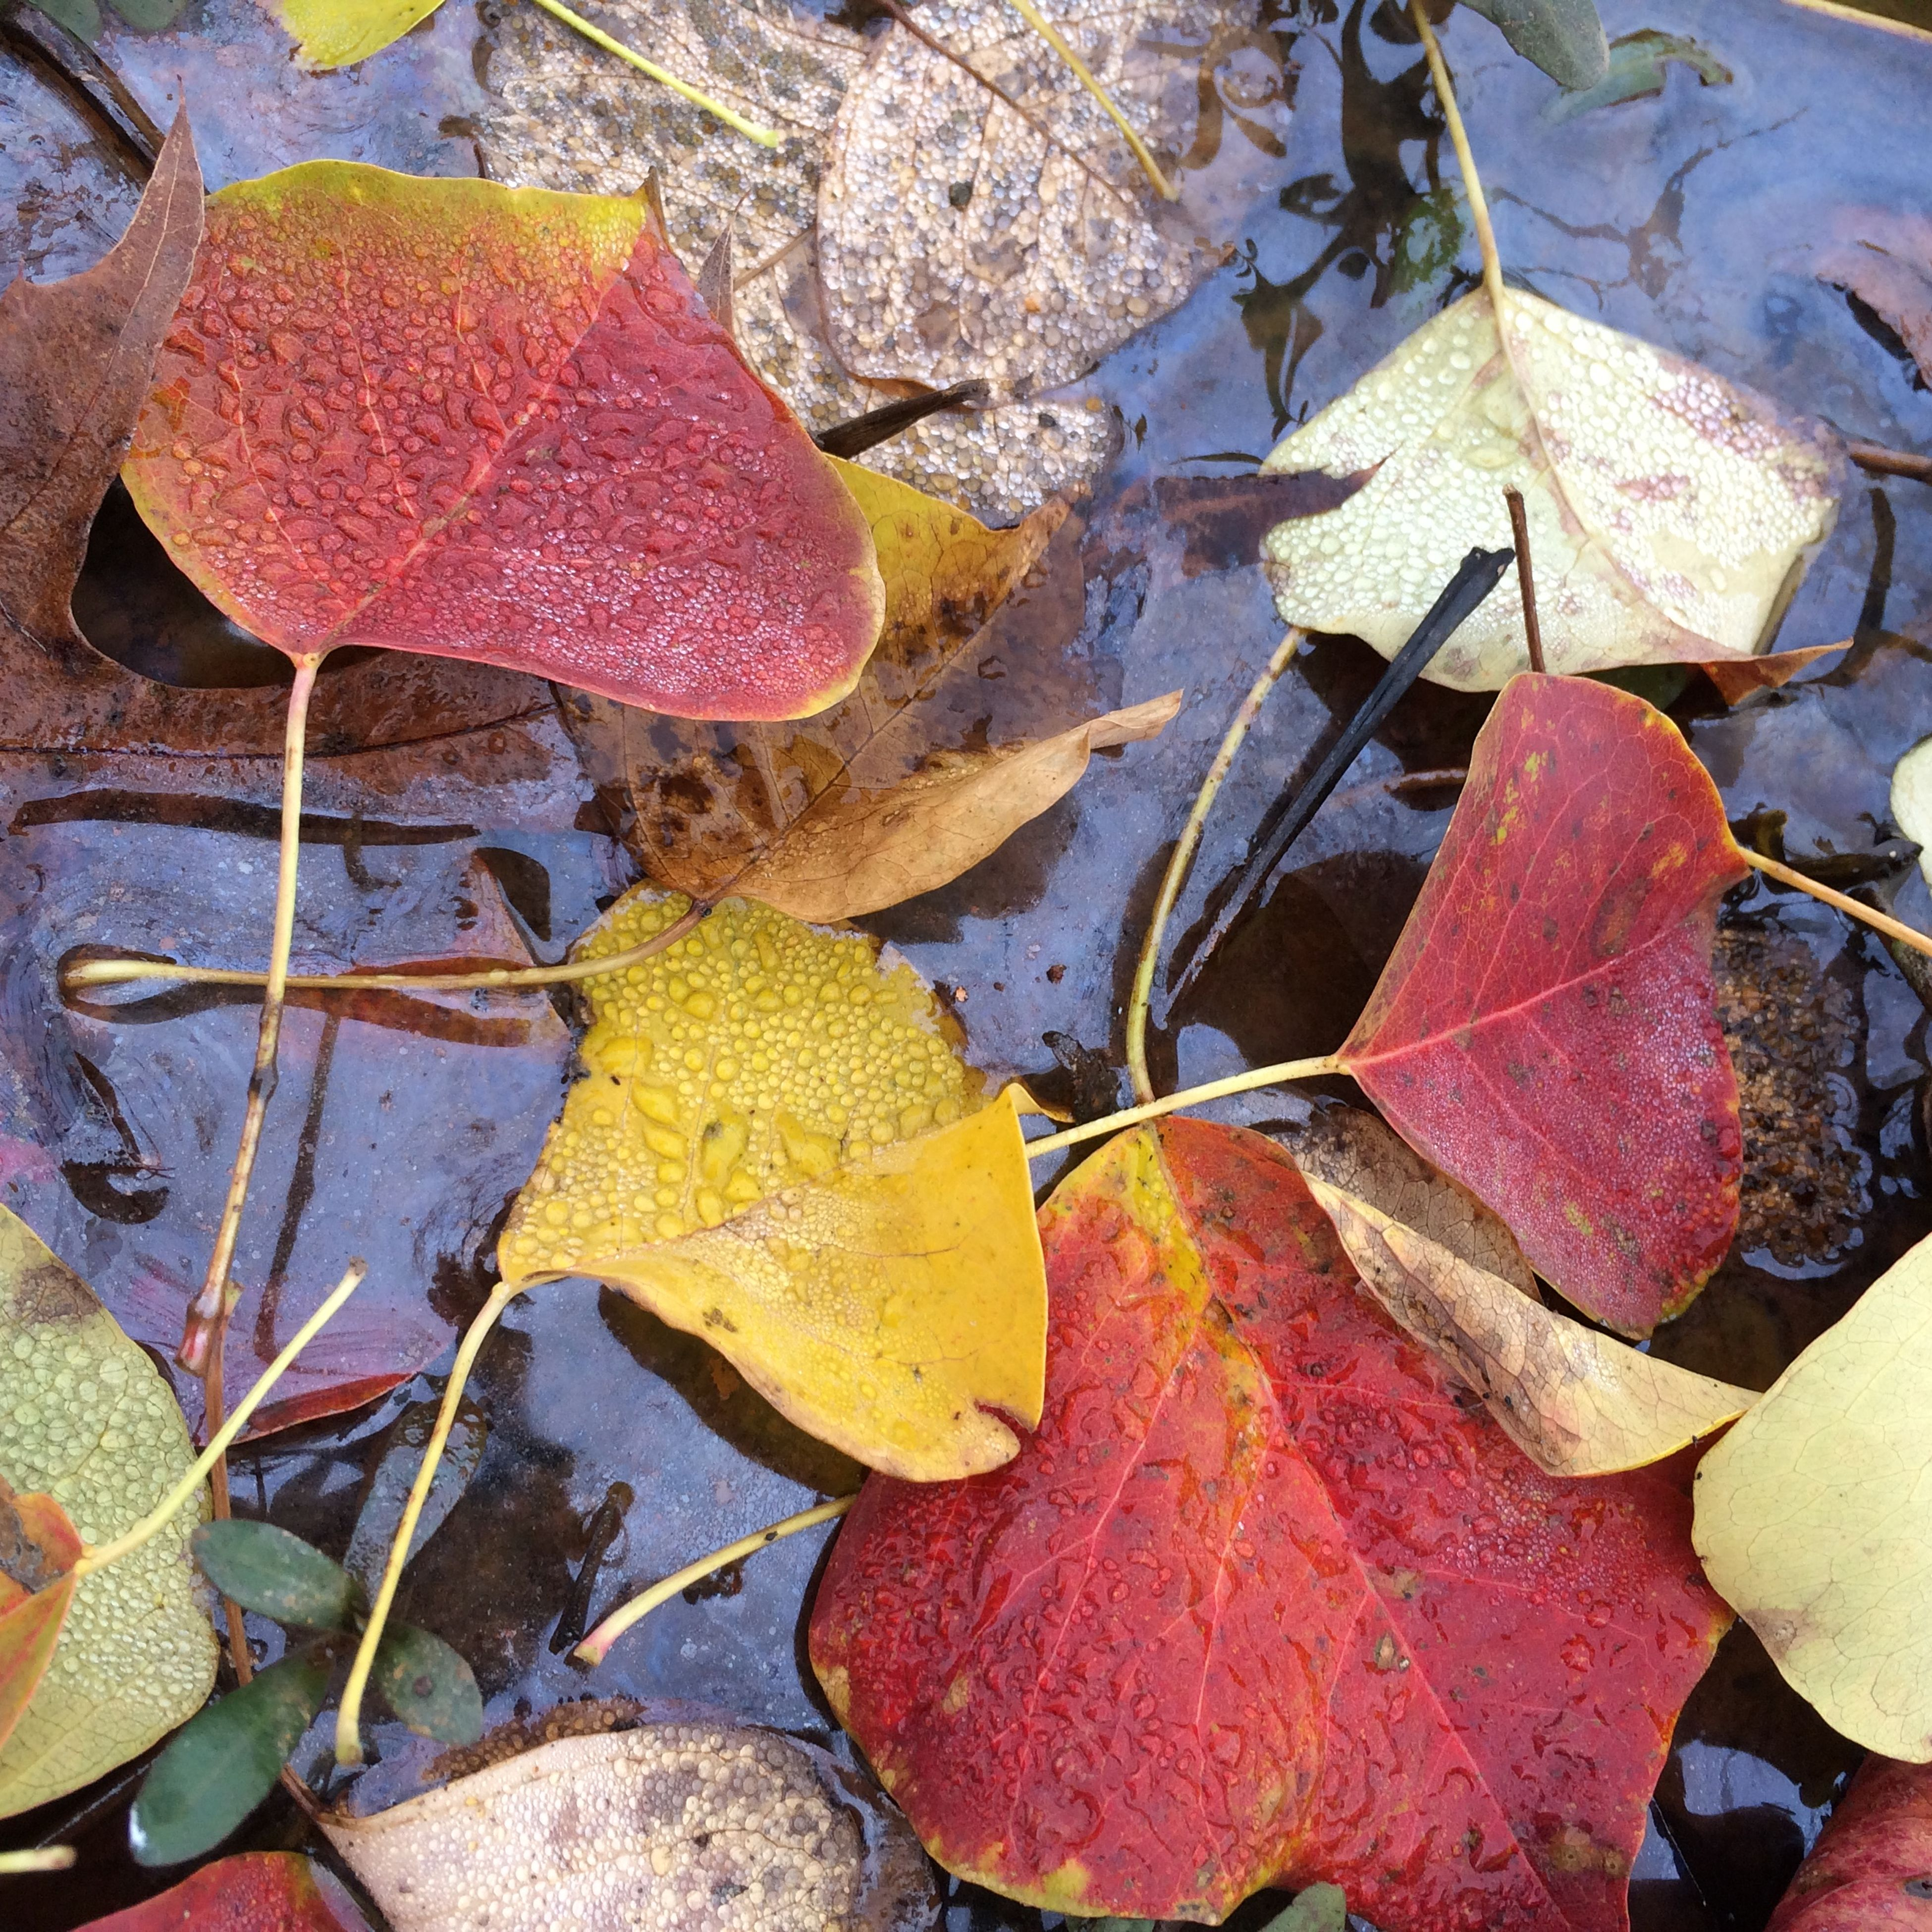 autumn, leaf, change, season, leaves, high angle view, dry, nature, fallen, red, day, close-up, outdoors, water, maple leaf, orange color, fragility, beauty in nature, leaf vein, no people